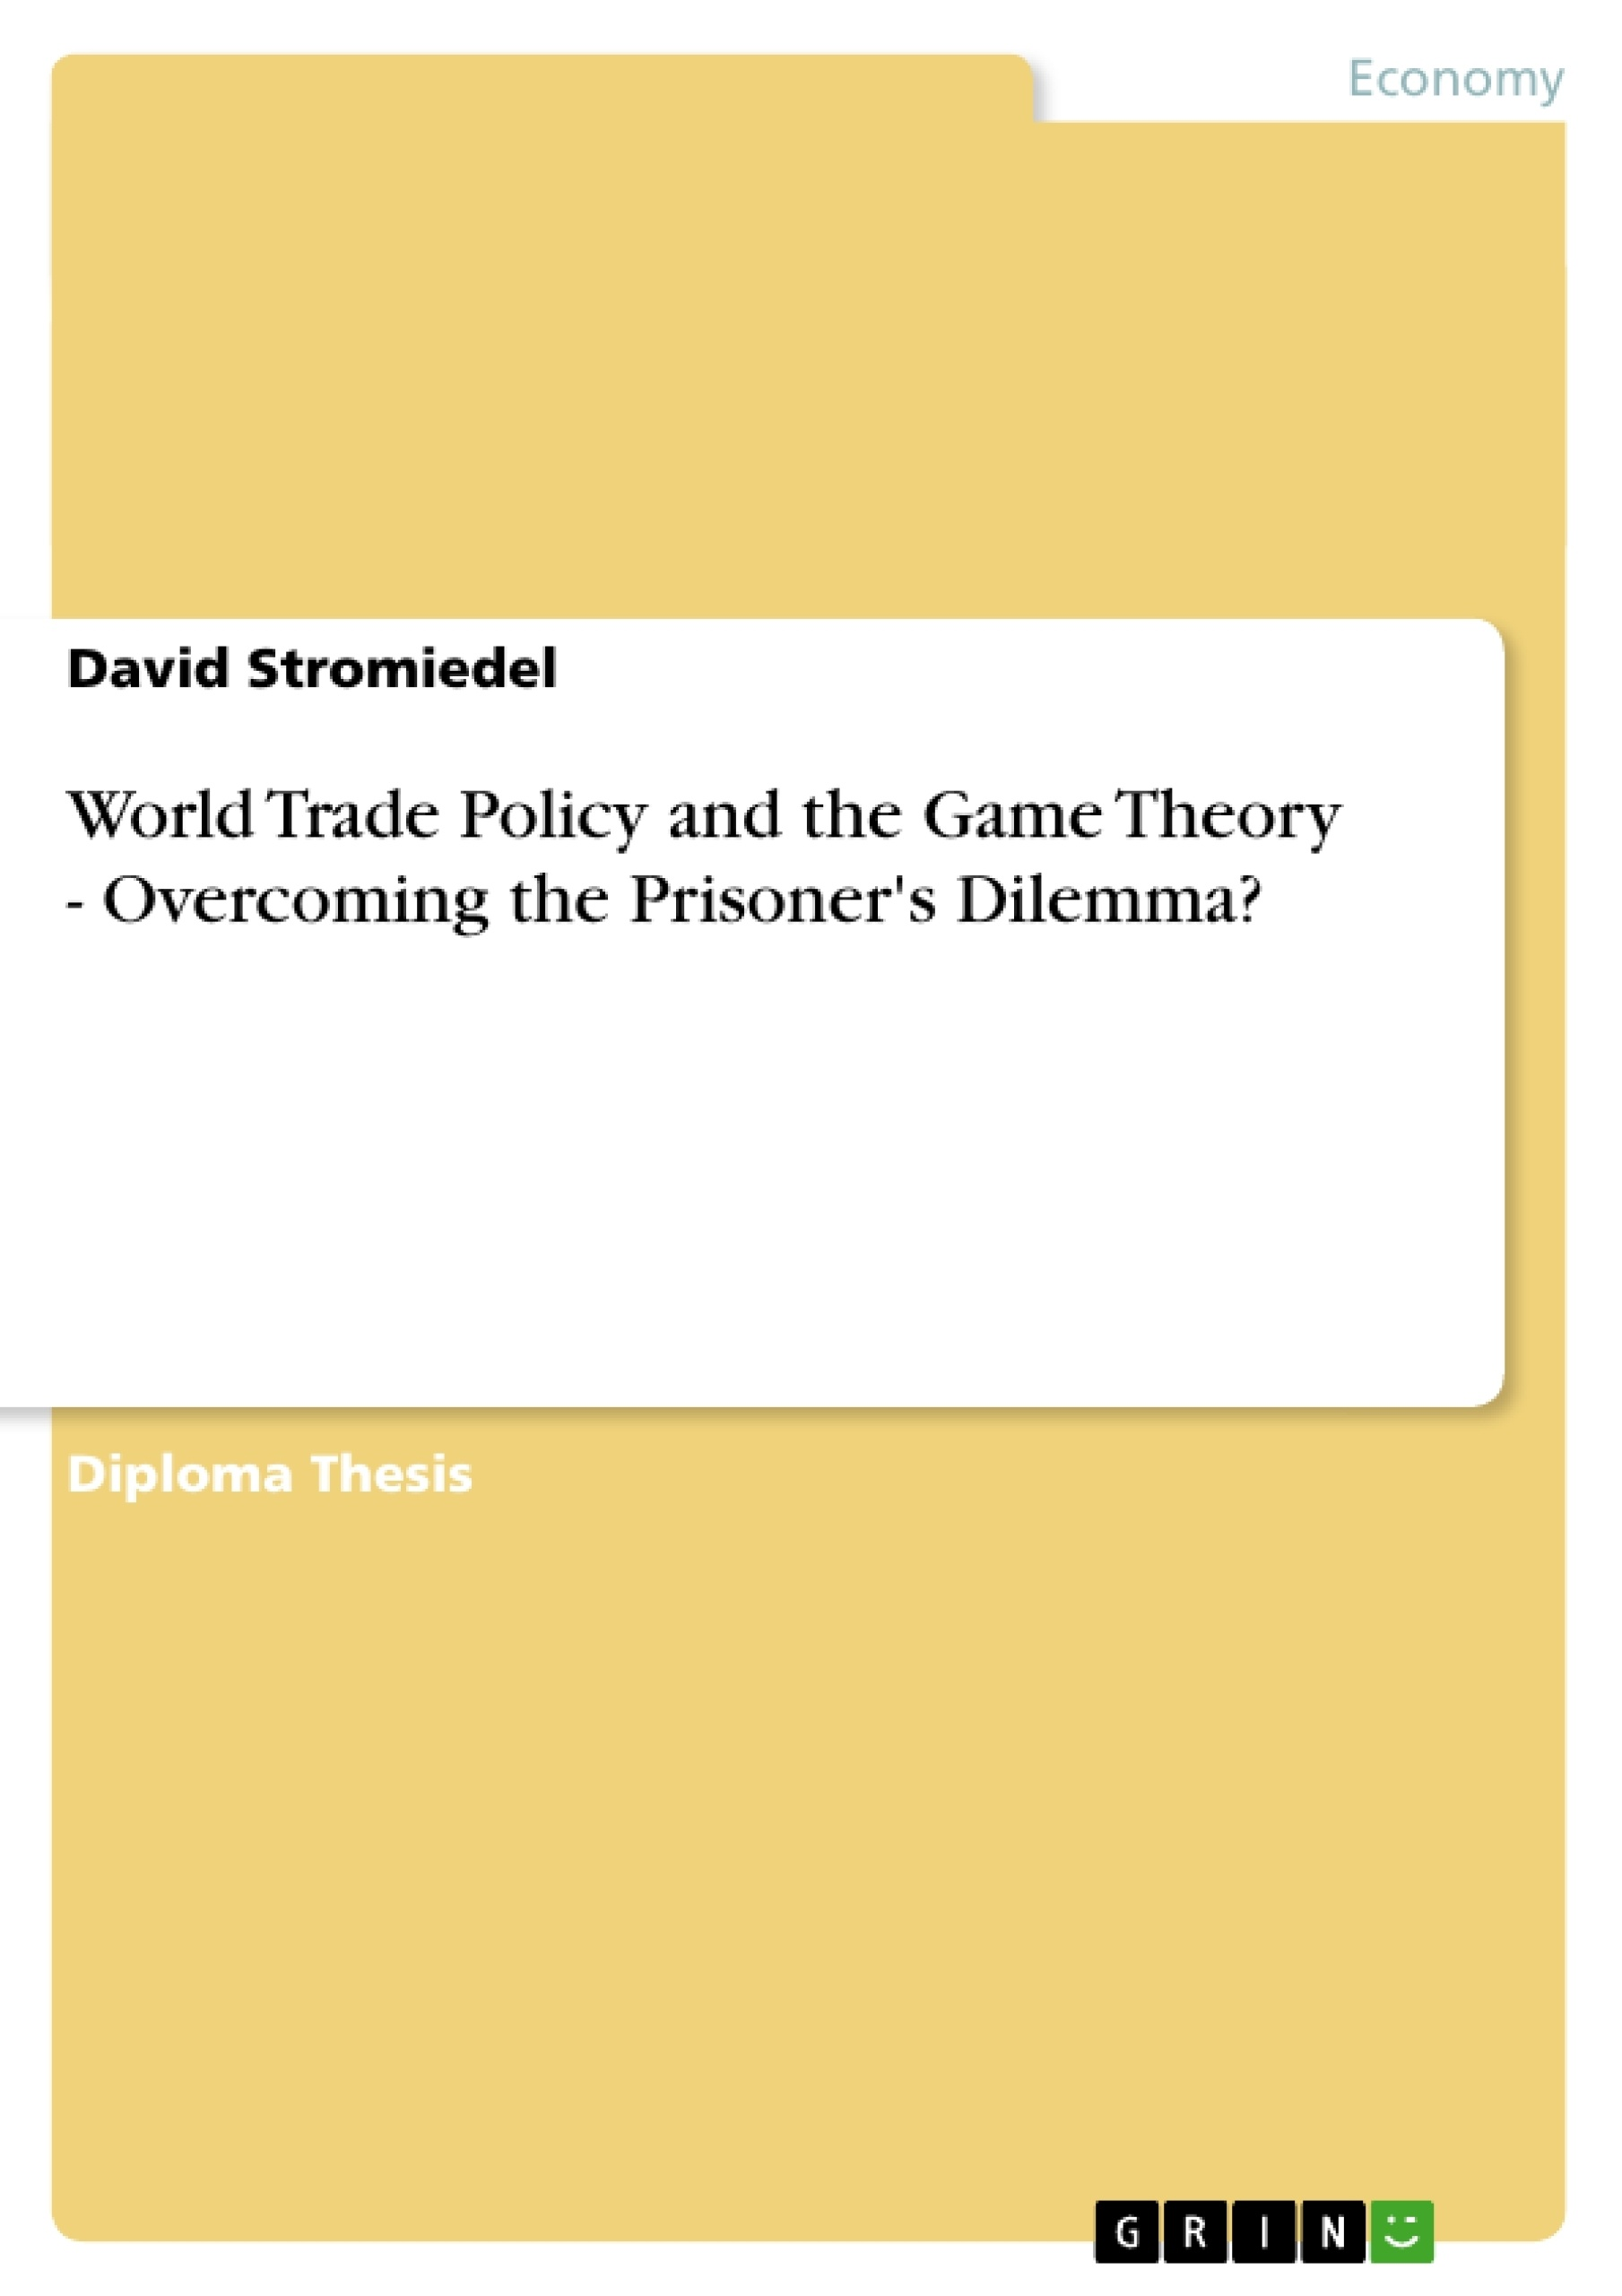 Title: World Trade Policy and the Game Theory - Overcoming the Prisoner's Dilemma?